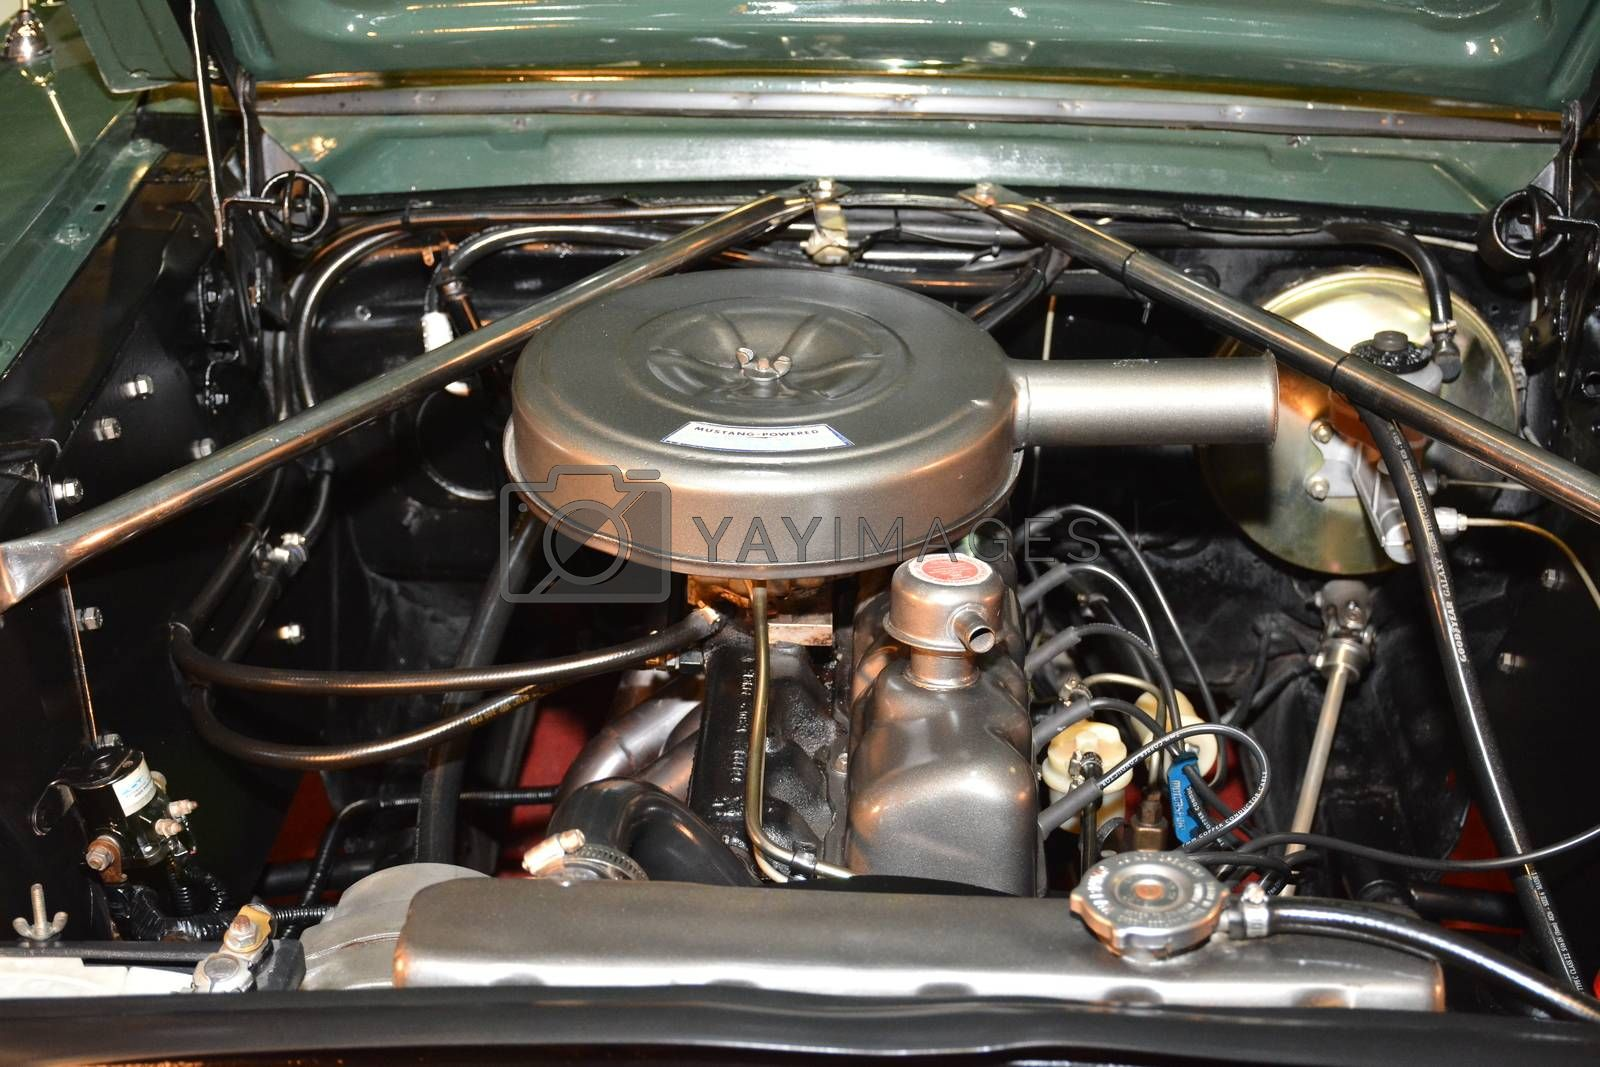 PASAY, PH - MAY 25 - Ford mustang motor engine at 25th Trans Sport Show on May 25, 2019 in Pasay, Philippines.